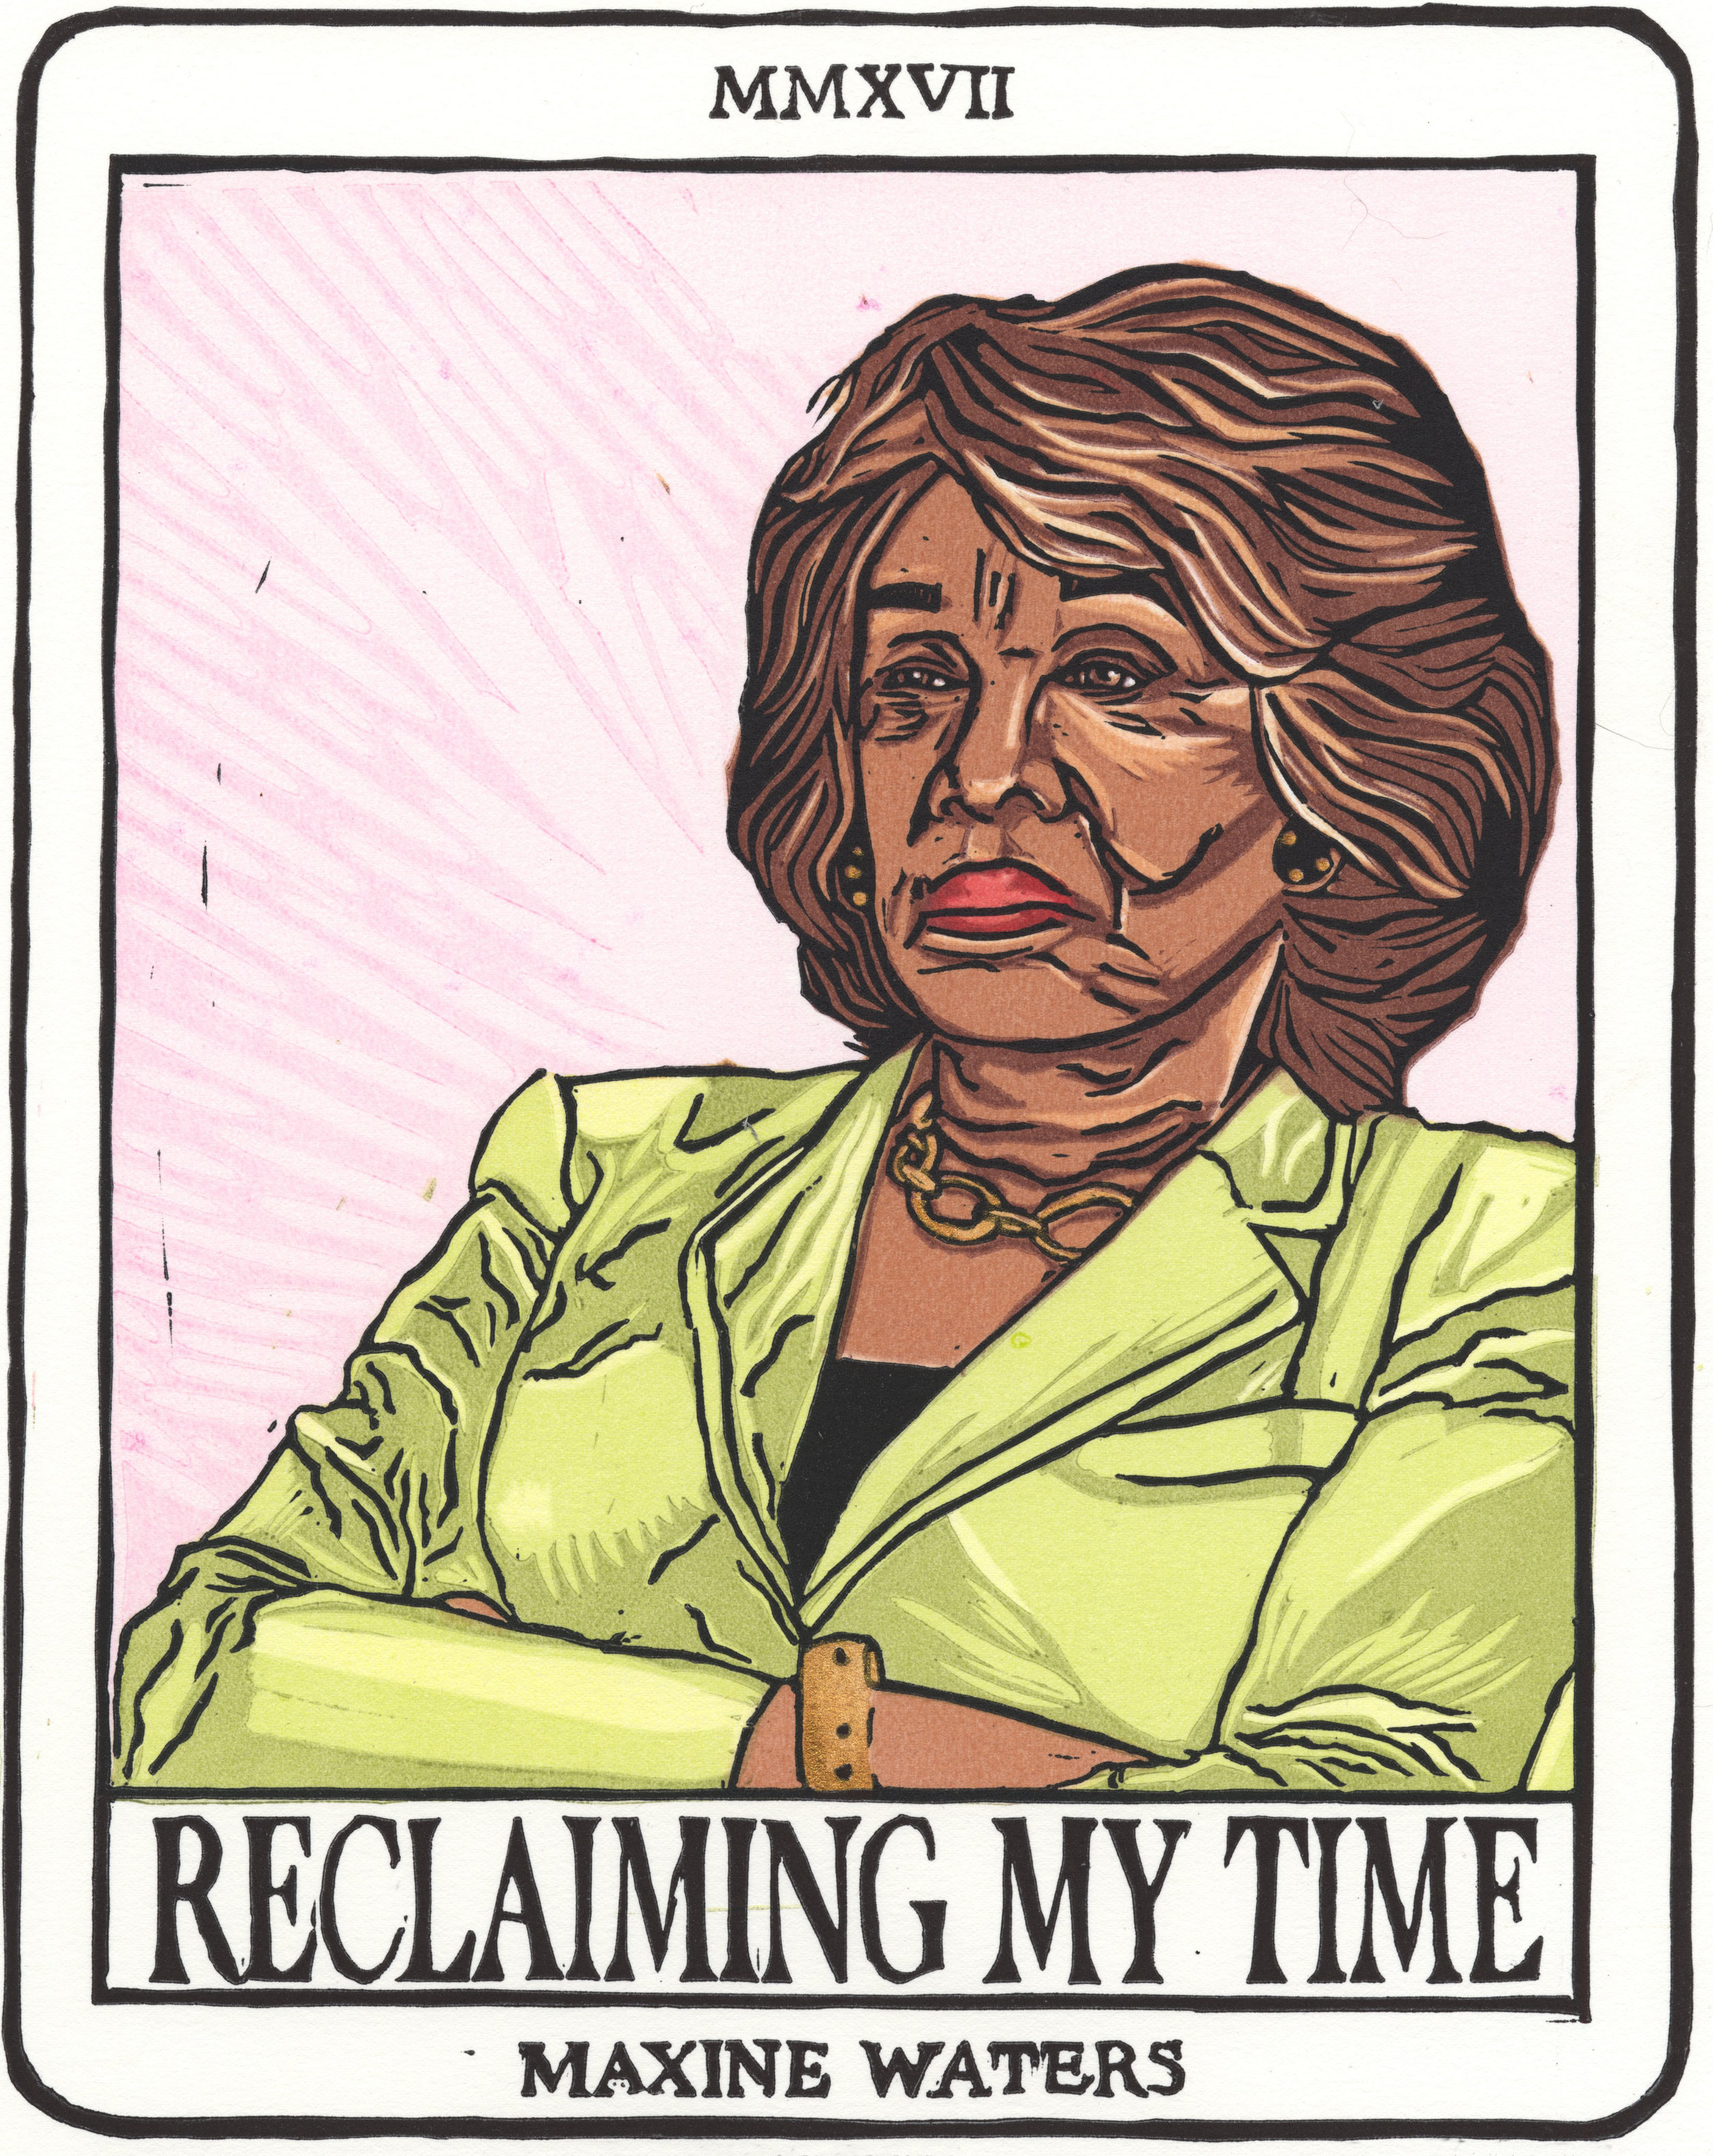 """RECLAIMING MY TIME , 2017  Rep. Maxine Waters(D-Calif.) upon being interrupted repeatedly by Treasury Secretary Steven Mnuchin at a House Financial Services Committee meeting in July 2017 became an overnight sensation for repeatedly announcing that she was """"Reclaiming my time""""."""